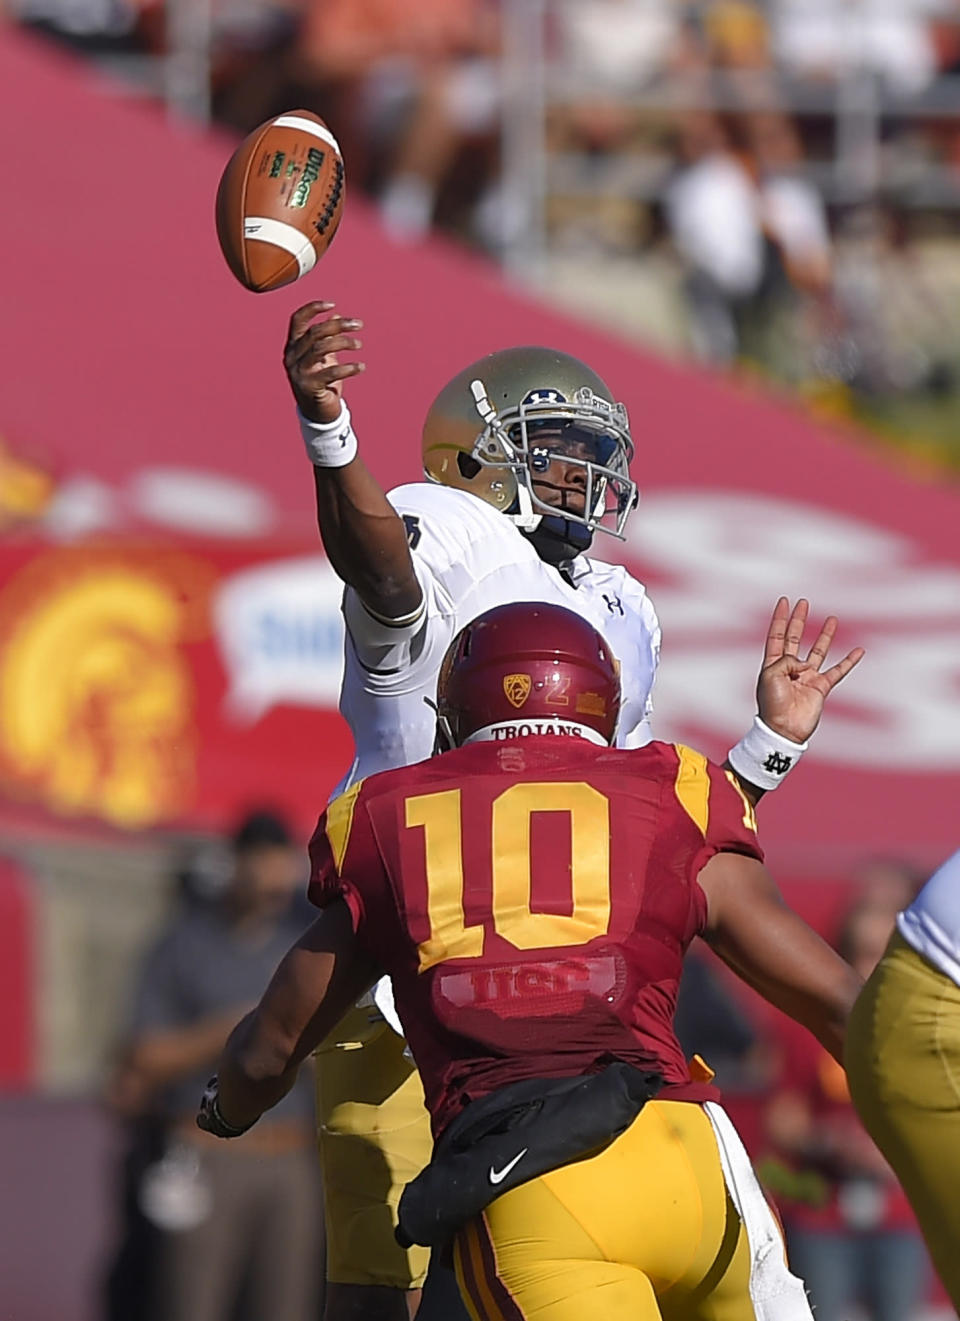 Notre Dame quarterback Everett Golson, top, passes before being hit by Southern California linebacker Hayes Pullard during the first half of an NCAA college football game, Saturday, Nov. 29, 2014, in Los Angeles. (AP Photo/Mark J. Terrill)